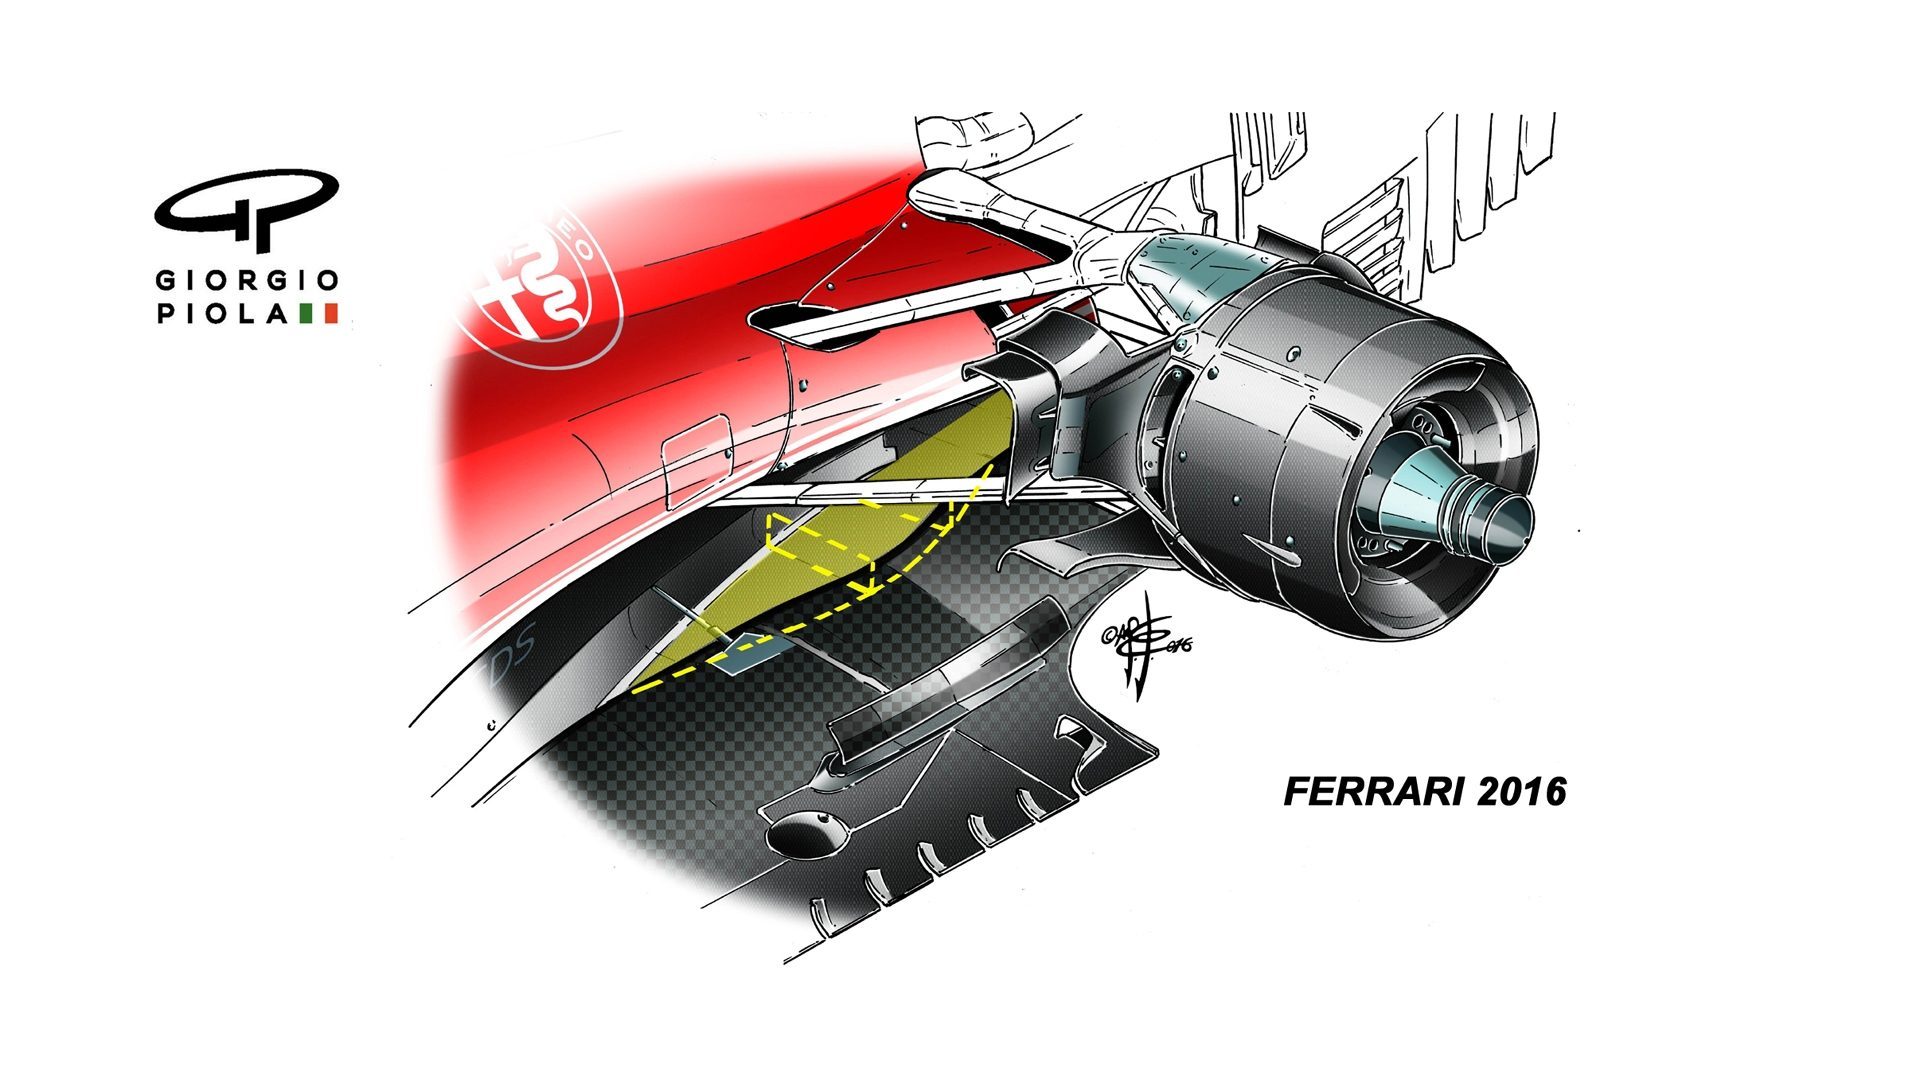 F1 Ferraris Nyserace New Racer A Close Look Live Trading News Diagram Of Downforce Generated By Raked Underbody From Y 2016 Onward Ferrari Has Used An Extreme Coke Bottle Shape And Airflow Channel To Improve Flow The Rear Car Down Force Generating